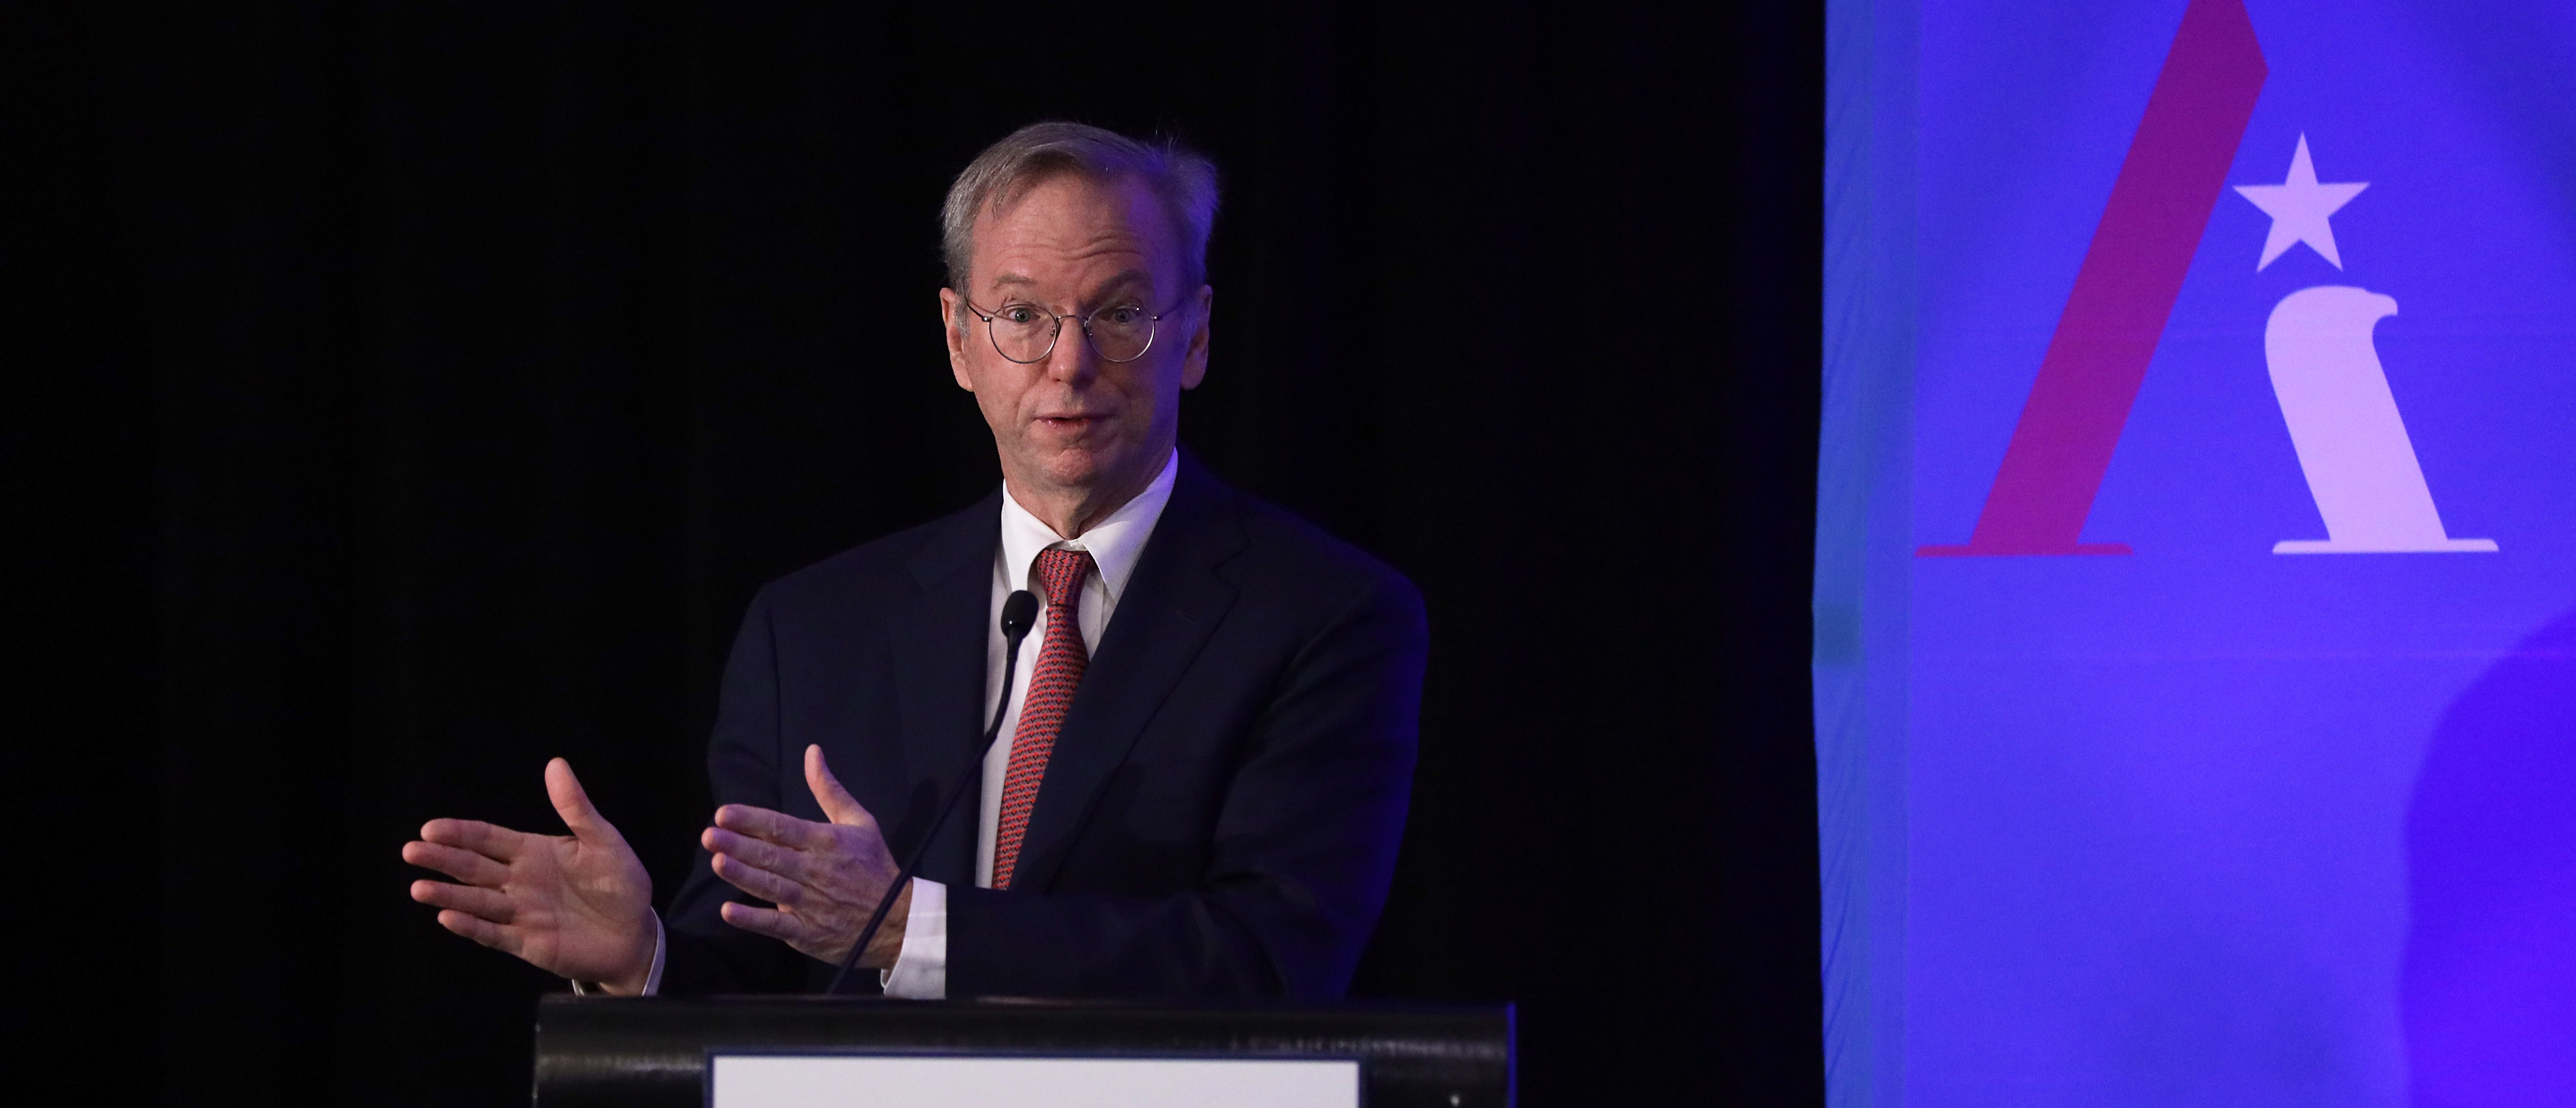 "WASHINGTON, DC - NOVEMBER 05: Executive Chairman of Alphabet Inc., Google's parent company, Eric Schmidt speaks during a National Security Commission on Artificial Intelligence (NSCAI) conference November 5, 2019 in Washington, DC. The National Security Commission on Artificial Intelligence held a conference on ""Strength Through Innovation: The Future of A.I. and U.S. National Security."" (Photo by Alex Wong/Getty Images)"